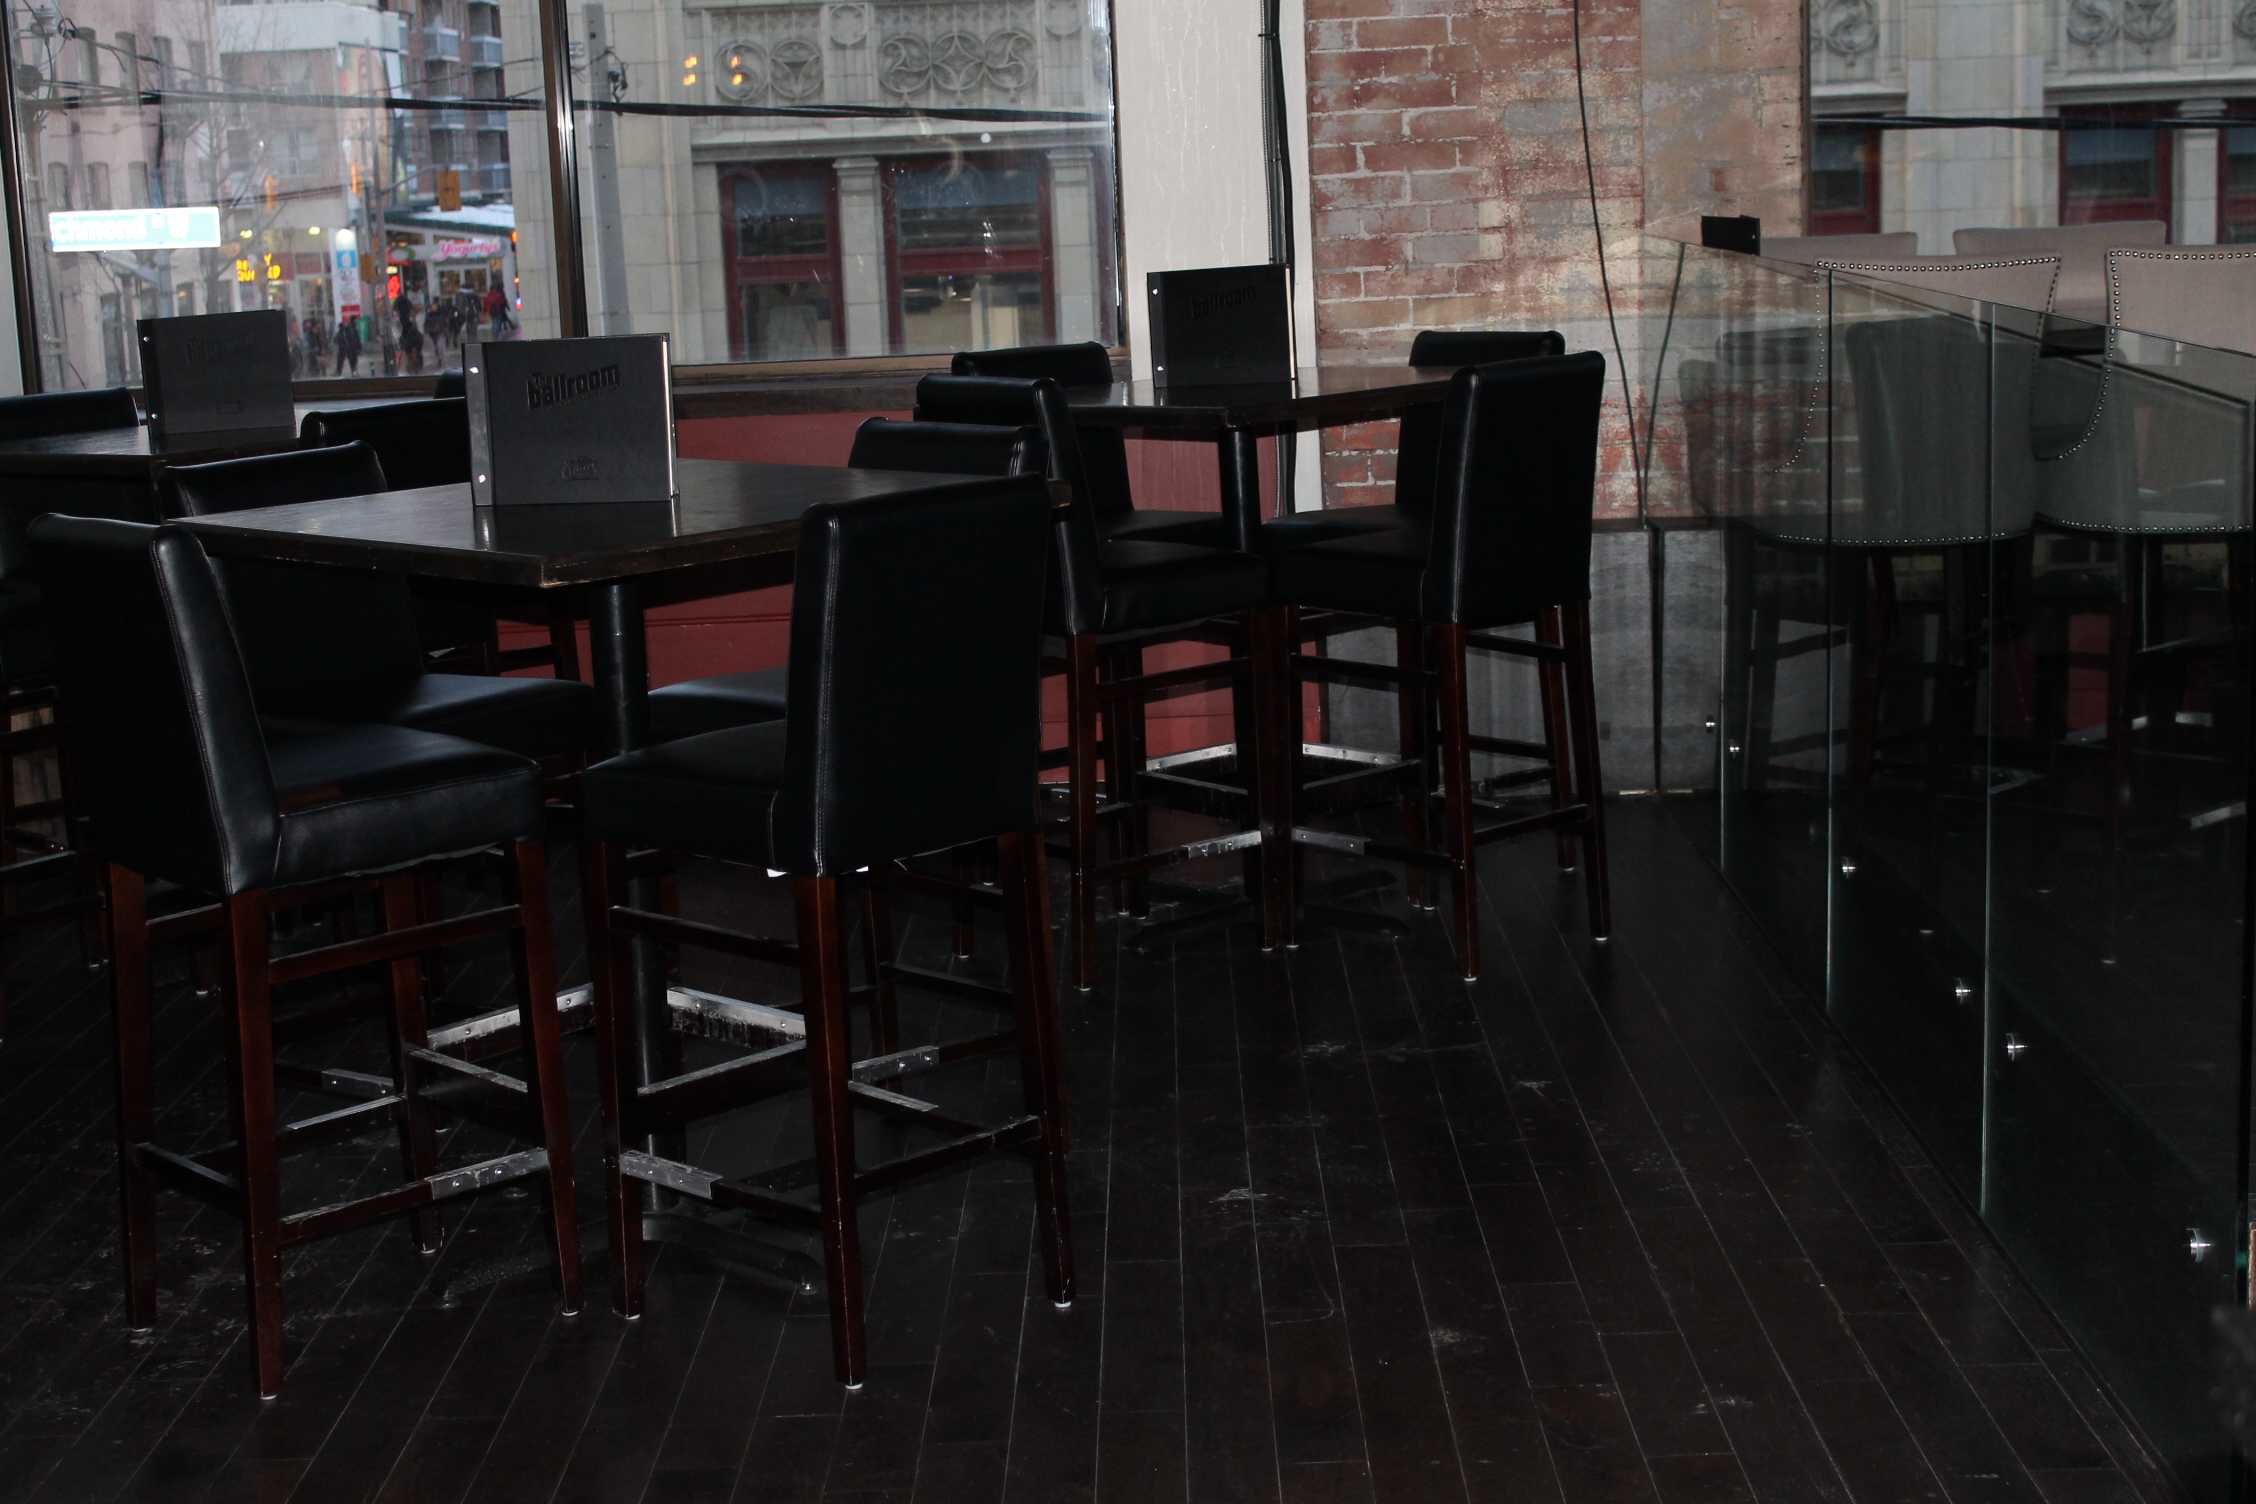 Picture of interior of accessible restaurant.